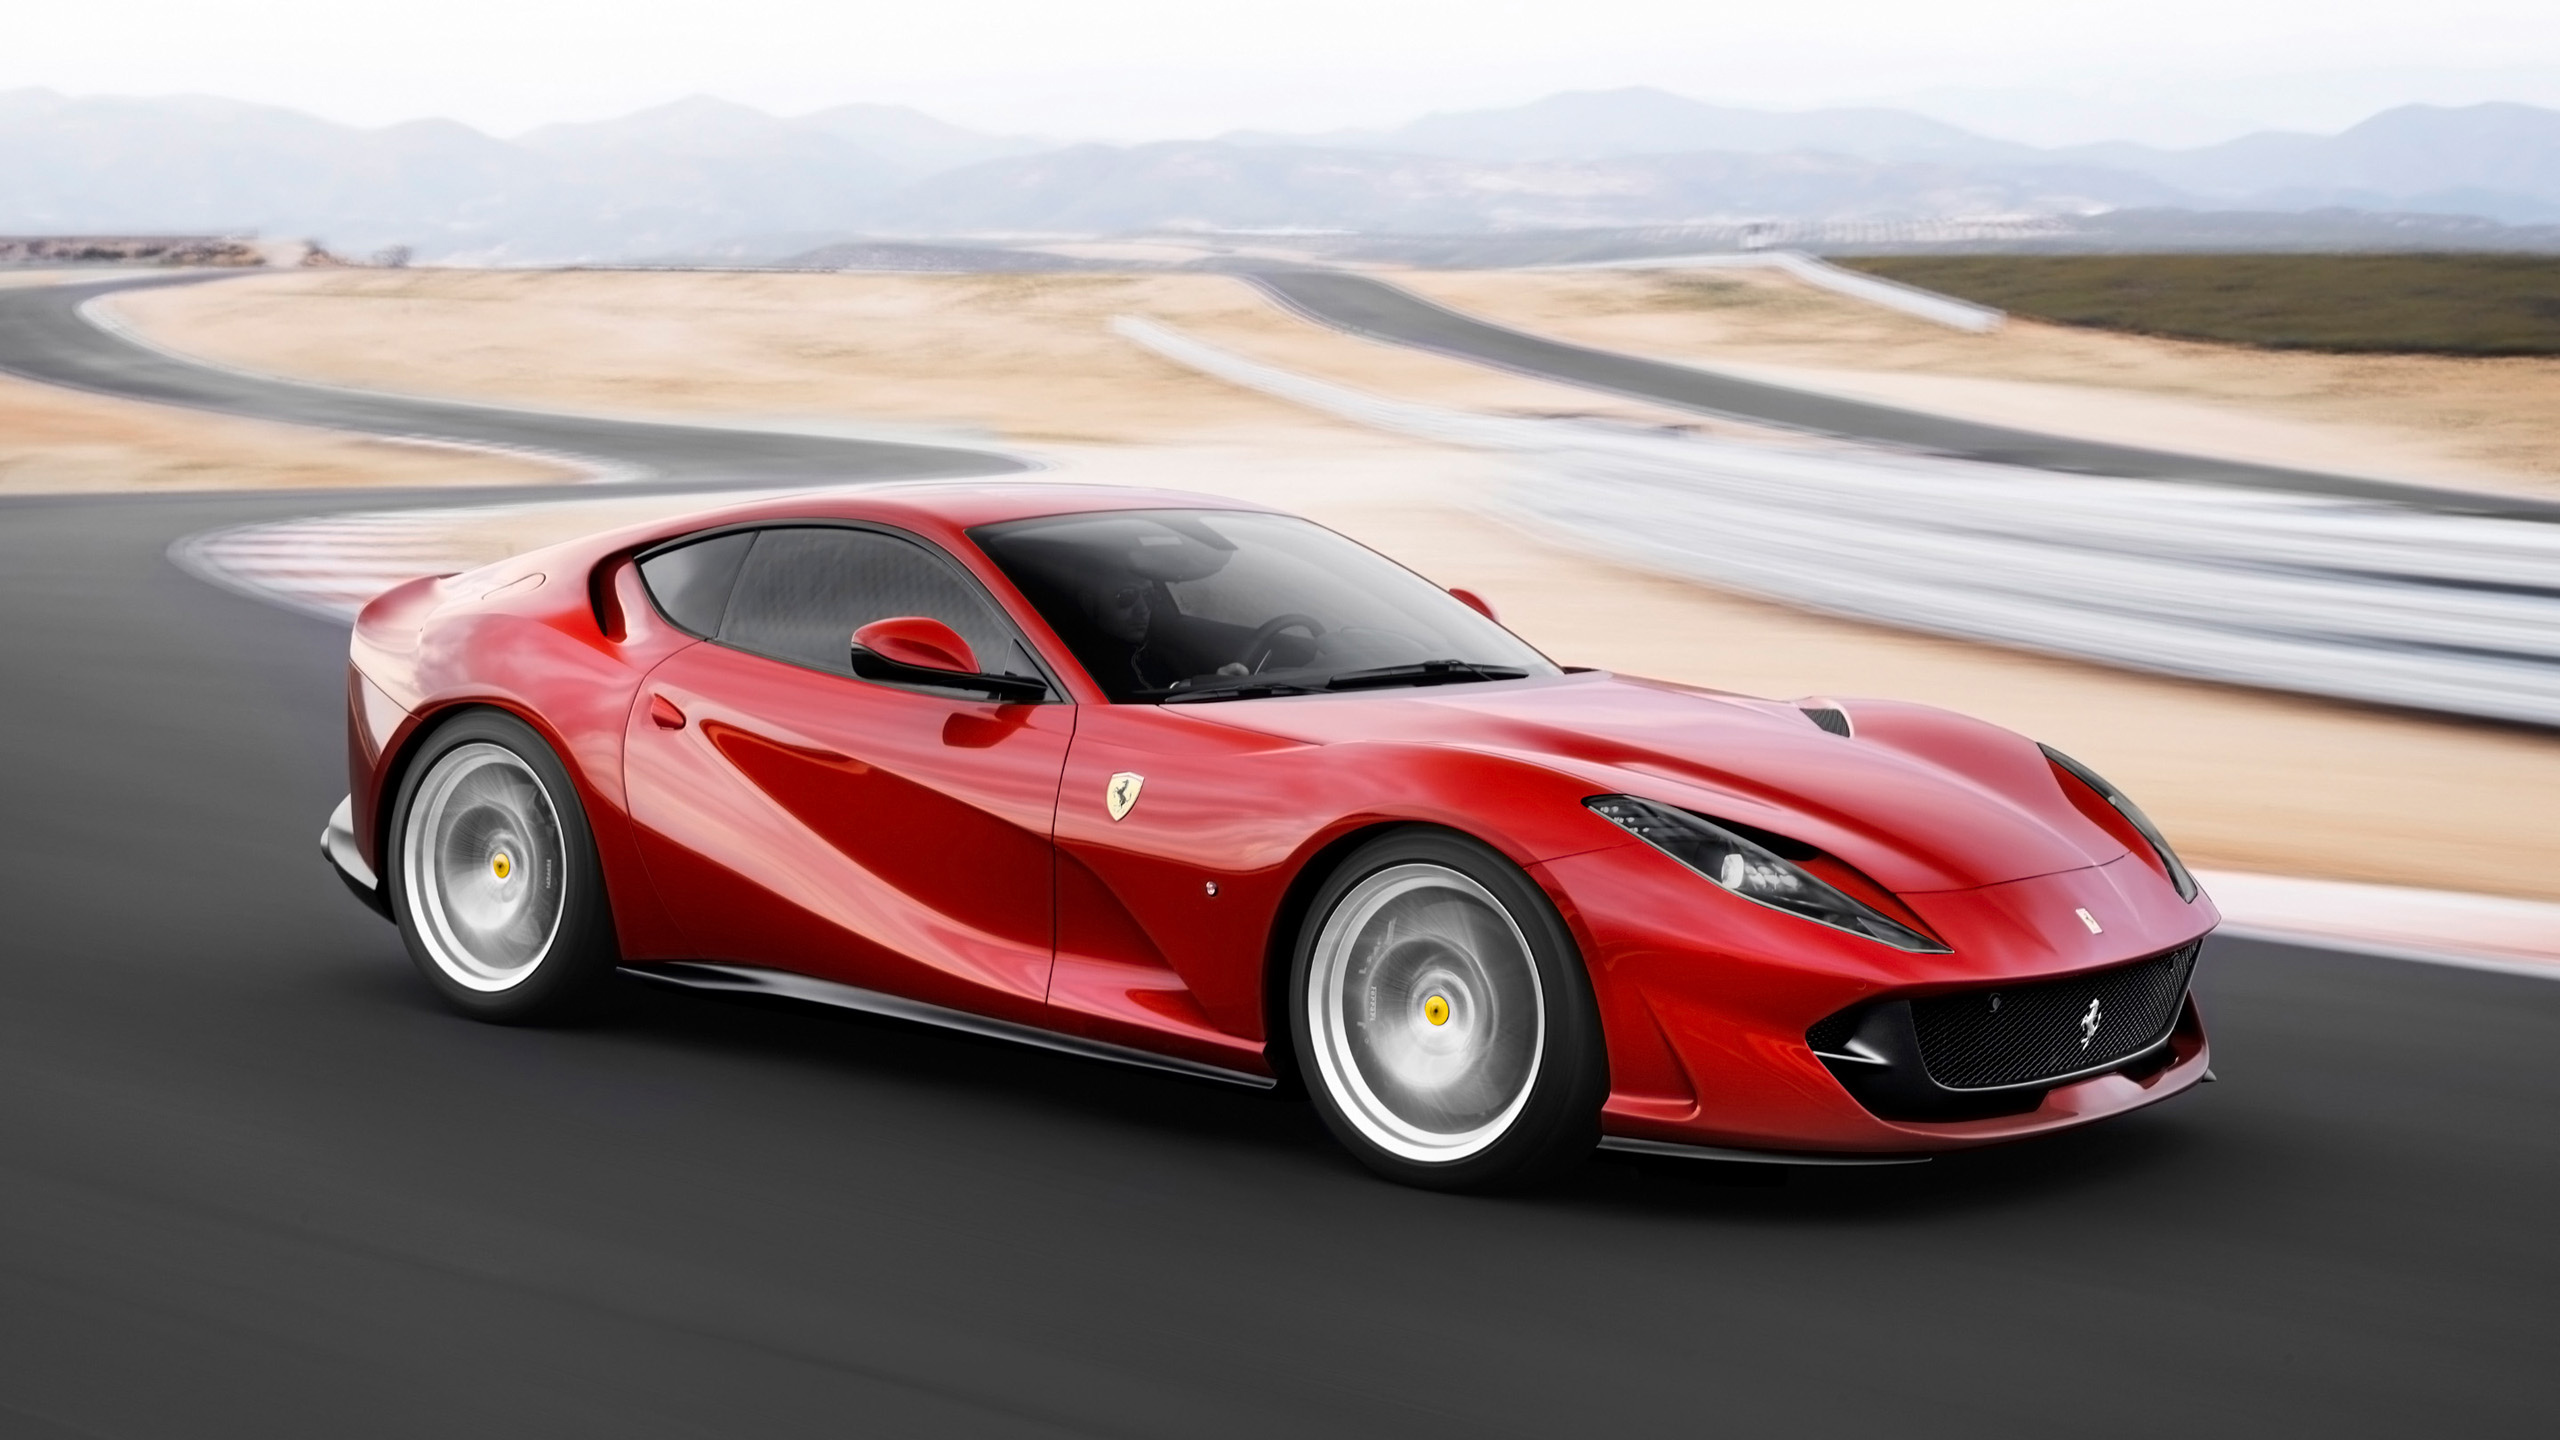 Ferrari 812 Superfast 2017 Wallpaper Hd Car Wallpapers